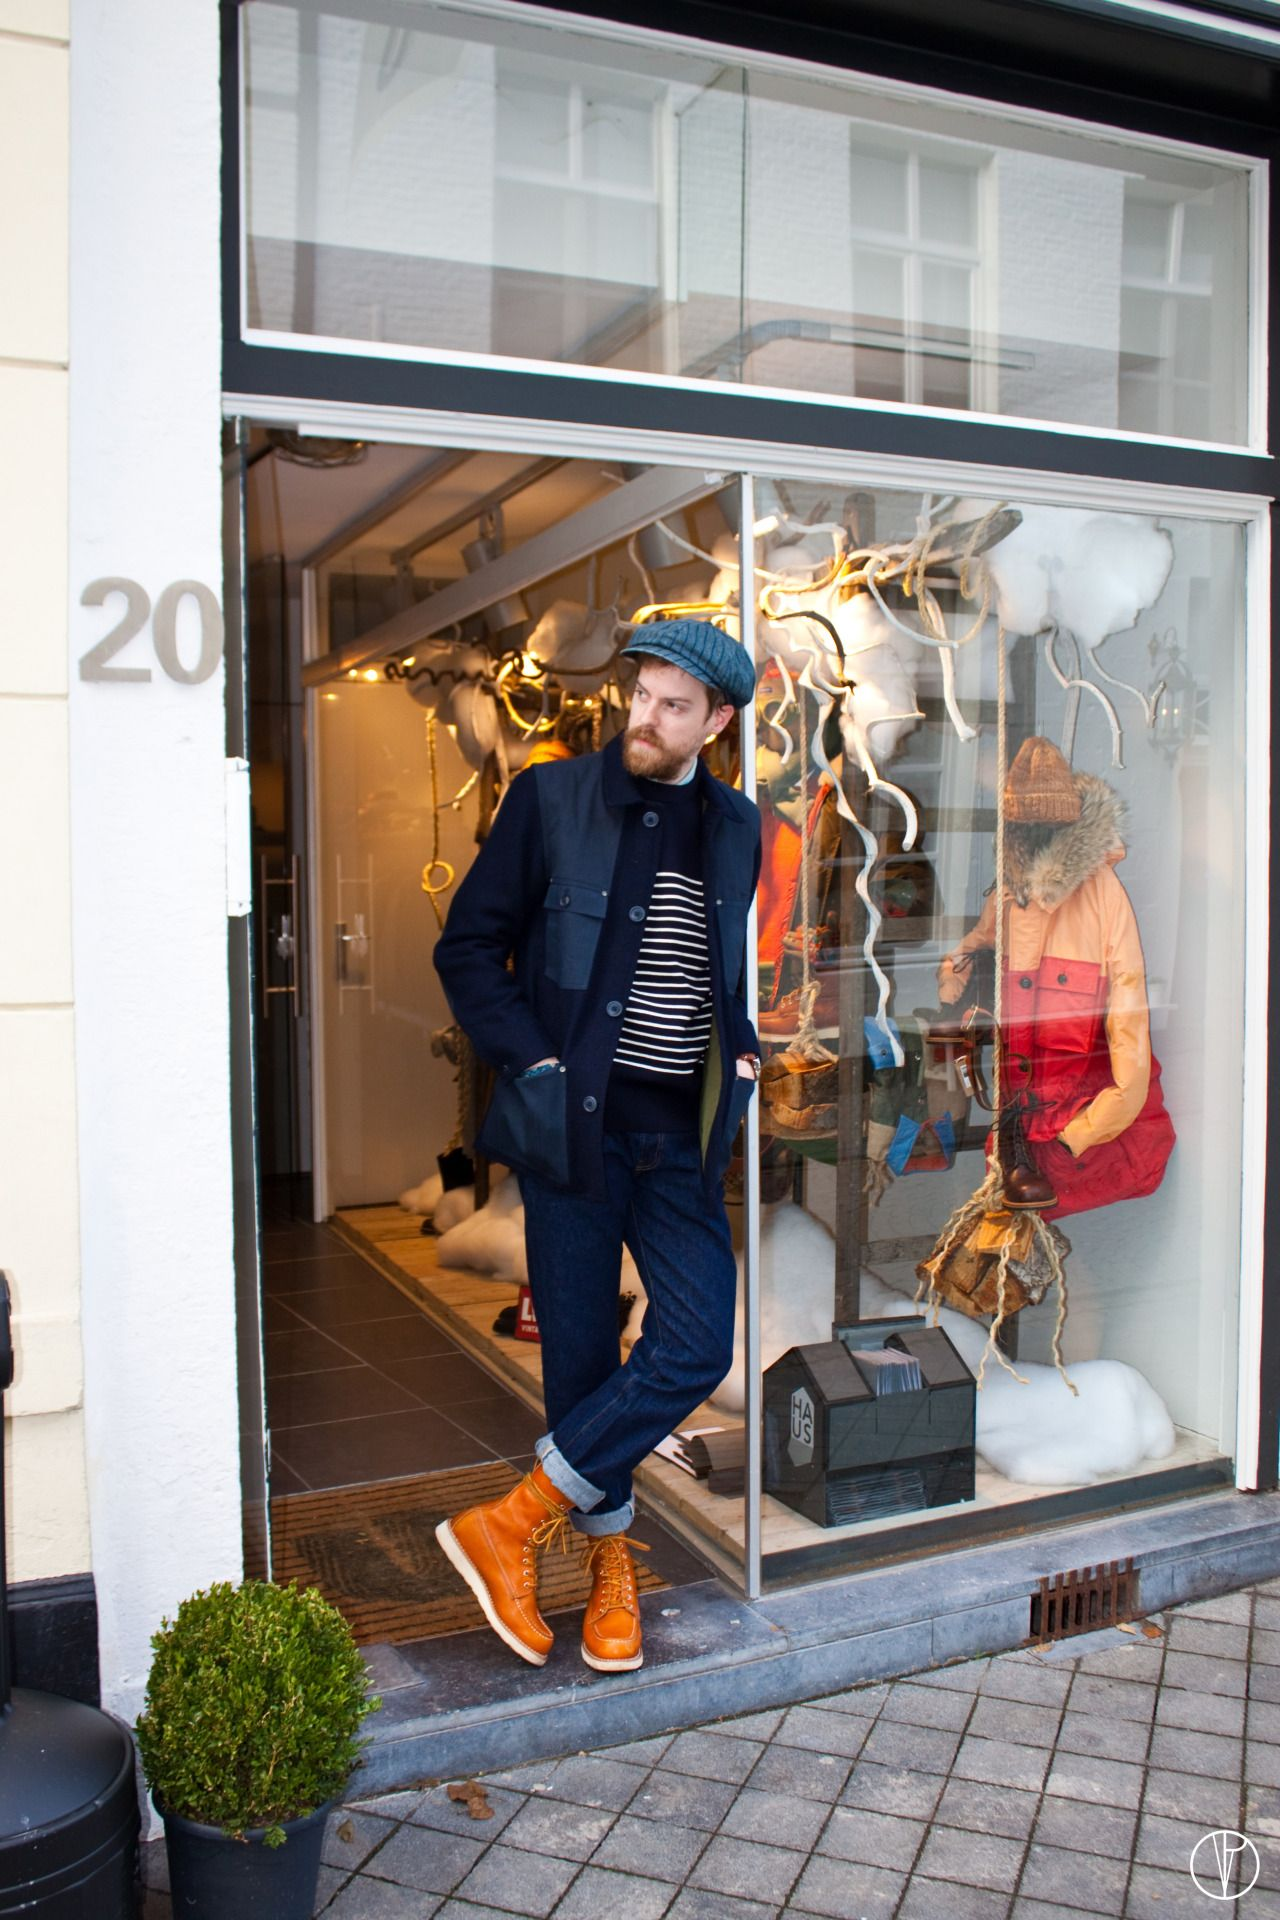 Michael van Hal Ouwe Paparazzi Photography Location : UshowU Store Maastricht (NL) Date : 15-11-2013 _______________ Last week I visited the UshowU store in Maastricht. Together with the owner Pieter we talked about the store, the products, the...